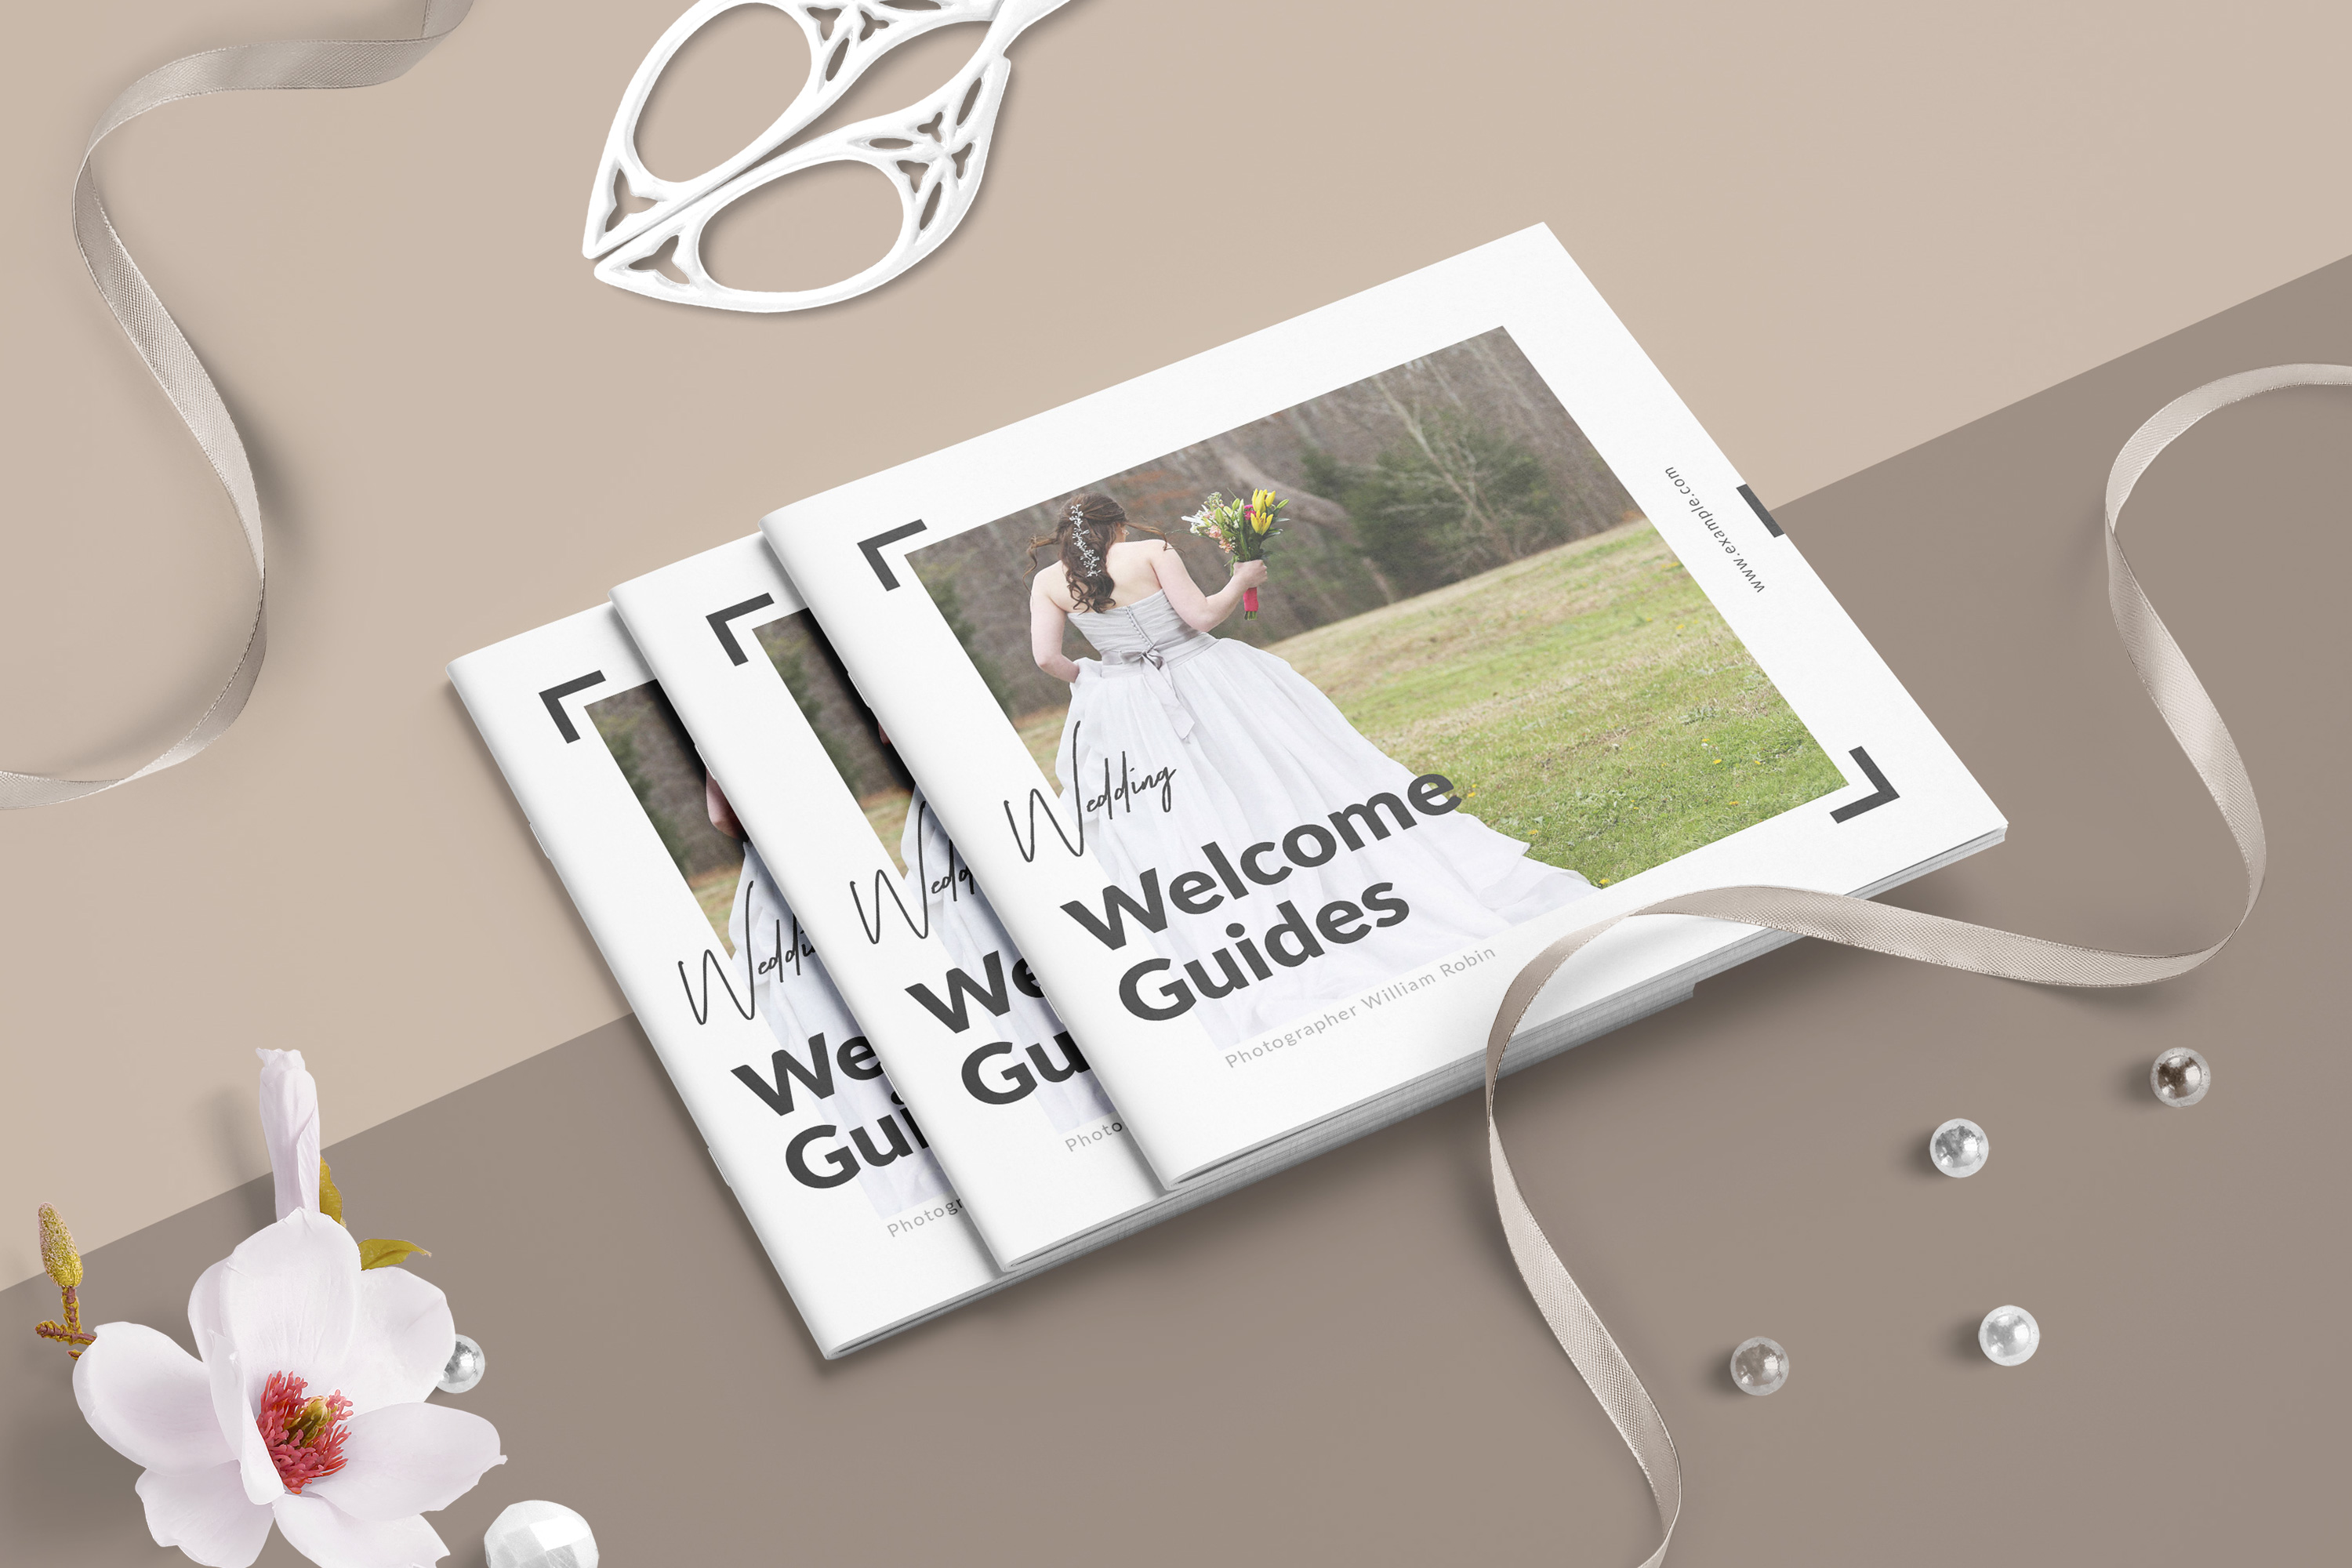 Wedding Photography Pricing Guide example image 1